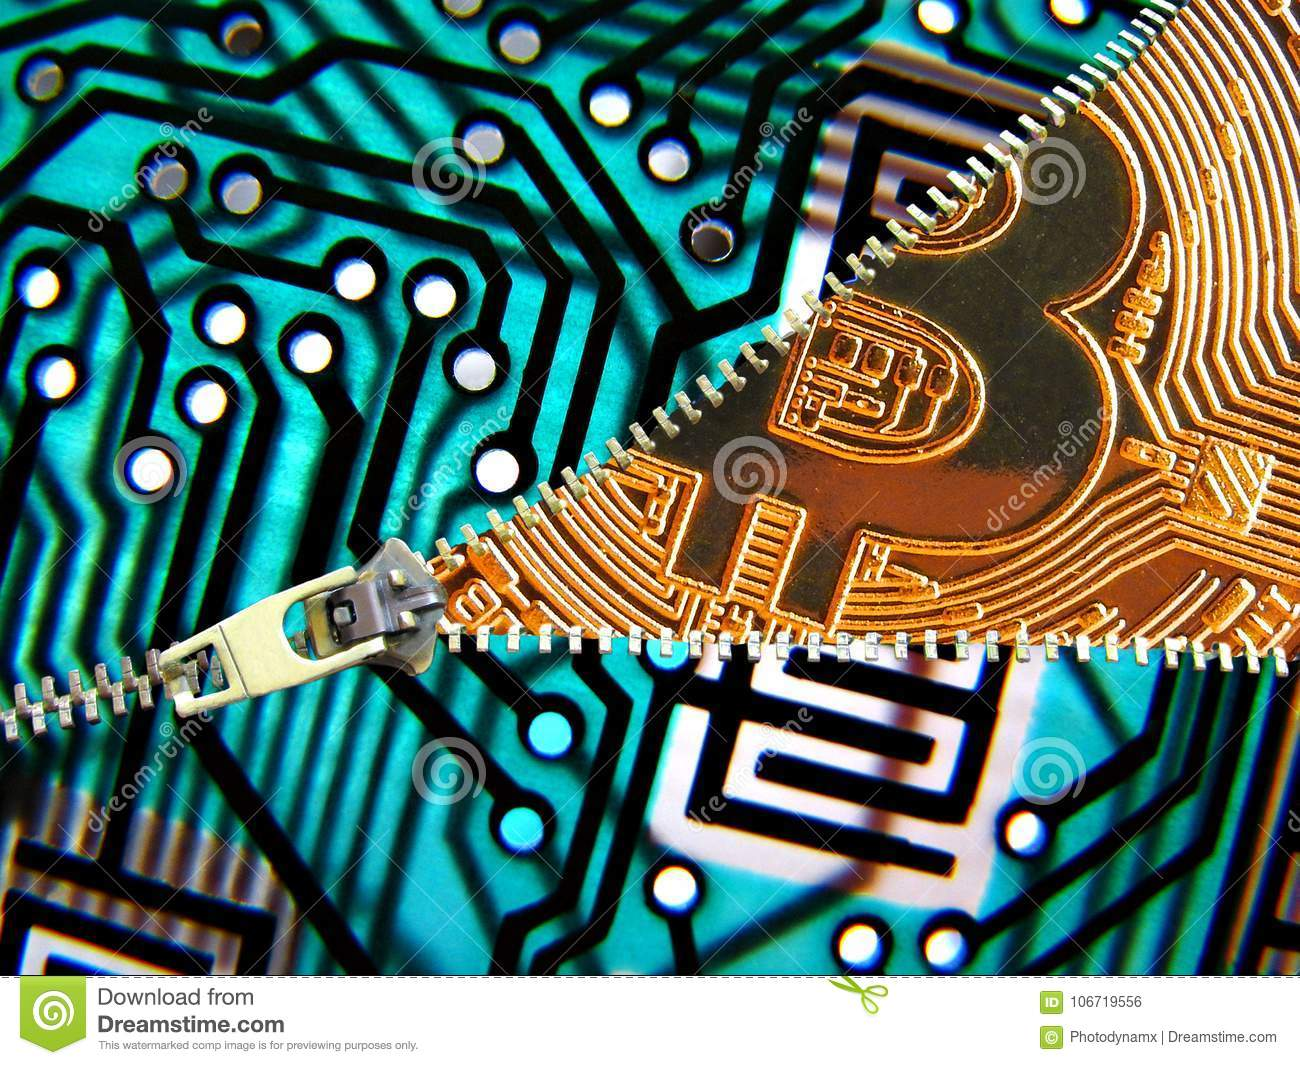 Bitcoin and cryptocurrency technologies incorporated spread betting financial transaction tax proposal